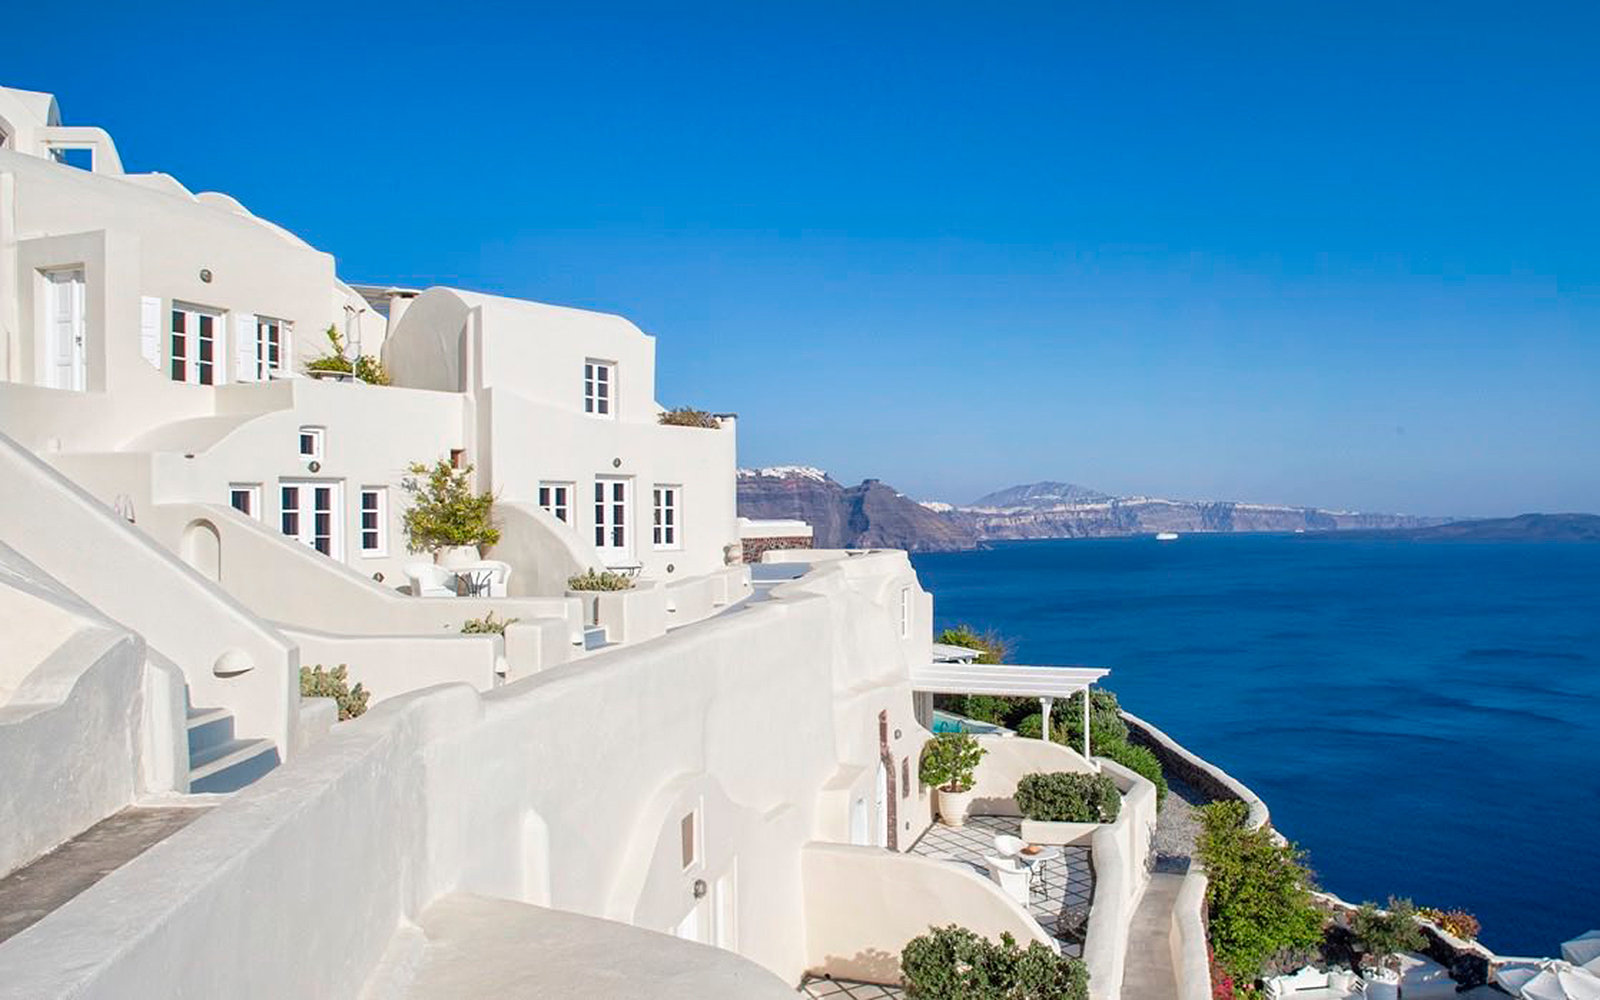 Canaves Oia Hotels & Suites, Santorini